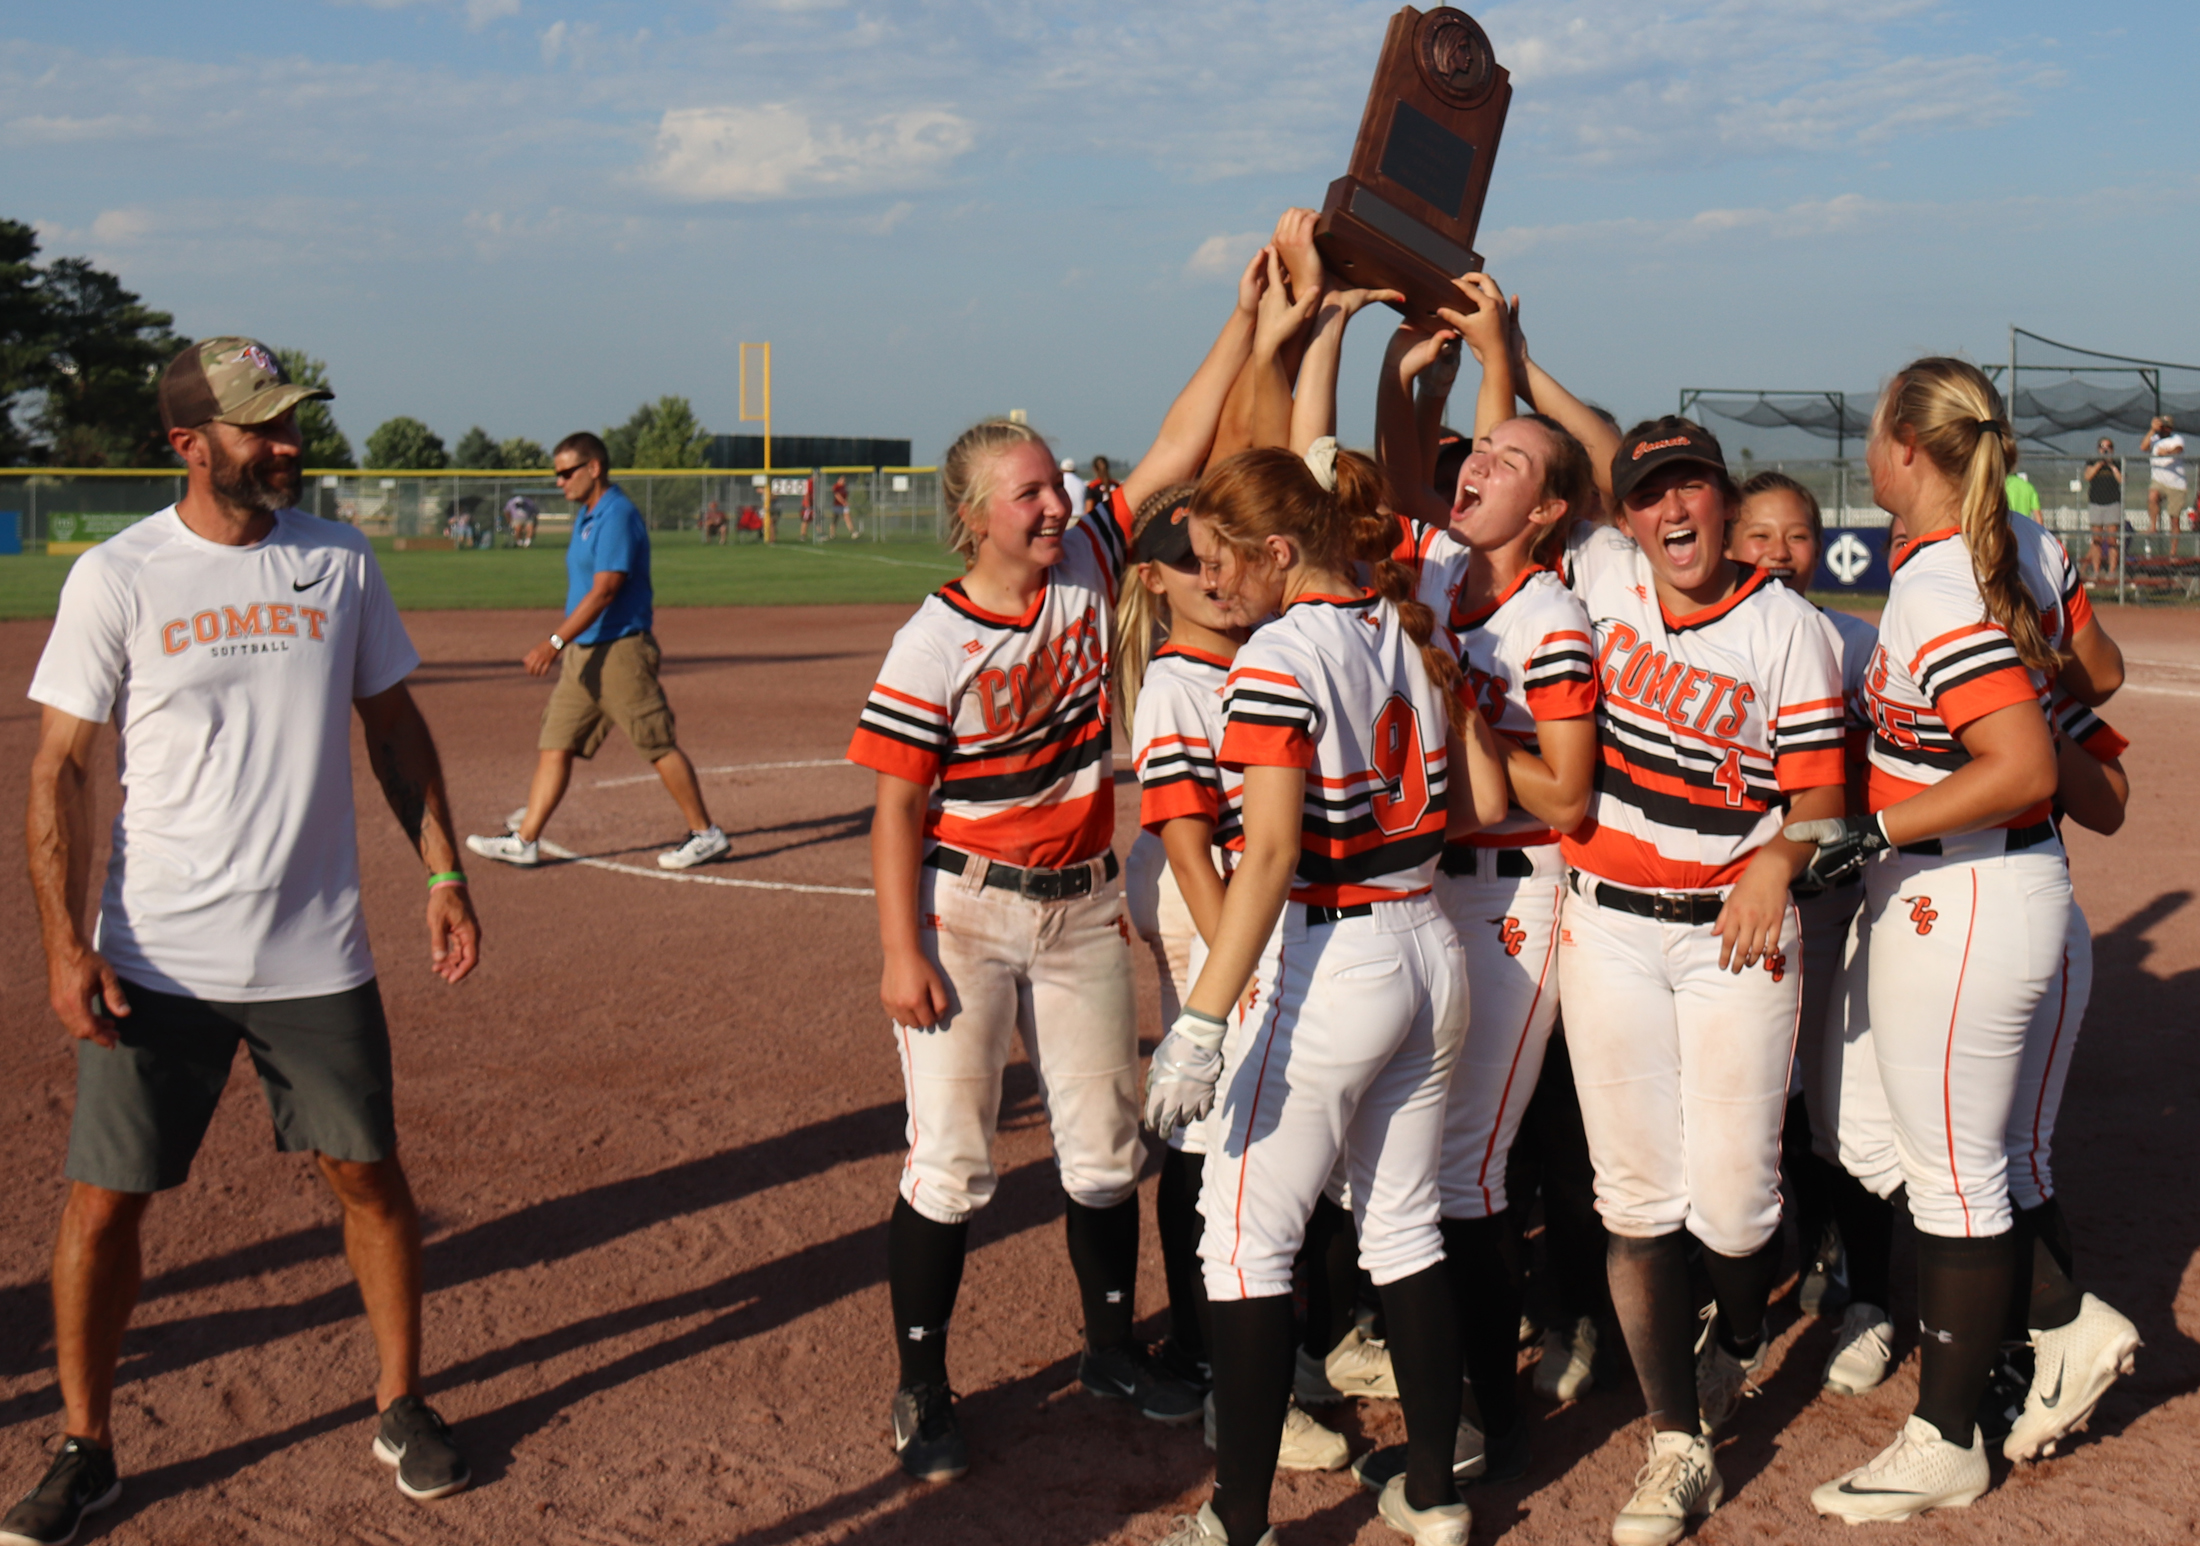 Comets make statement at State, come from behind to win 3rd-place game